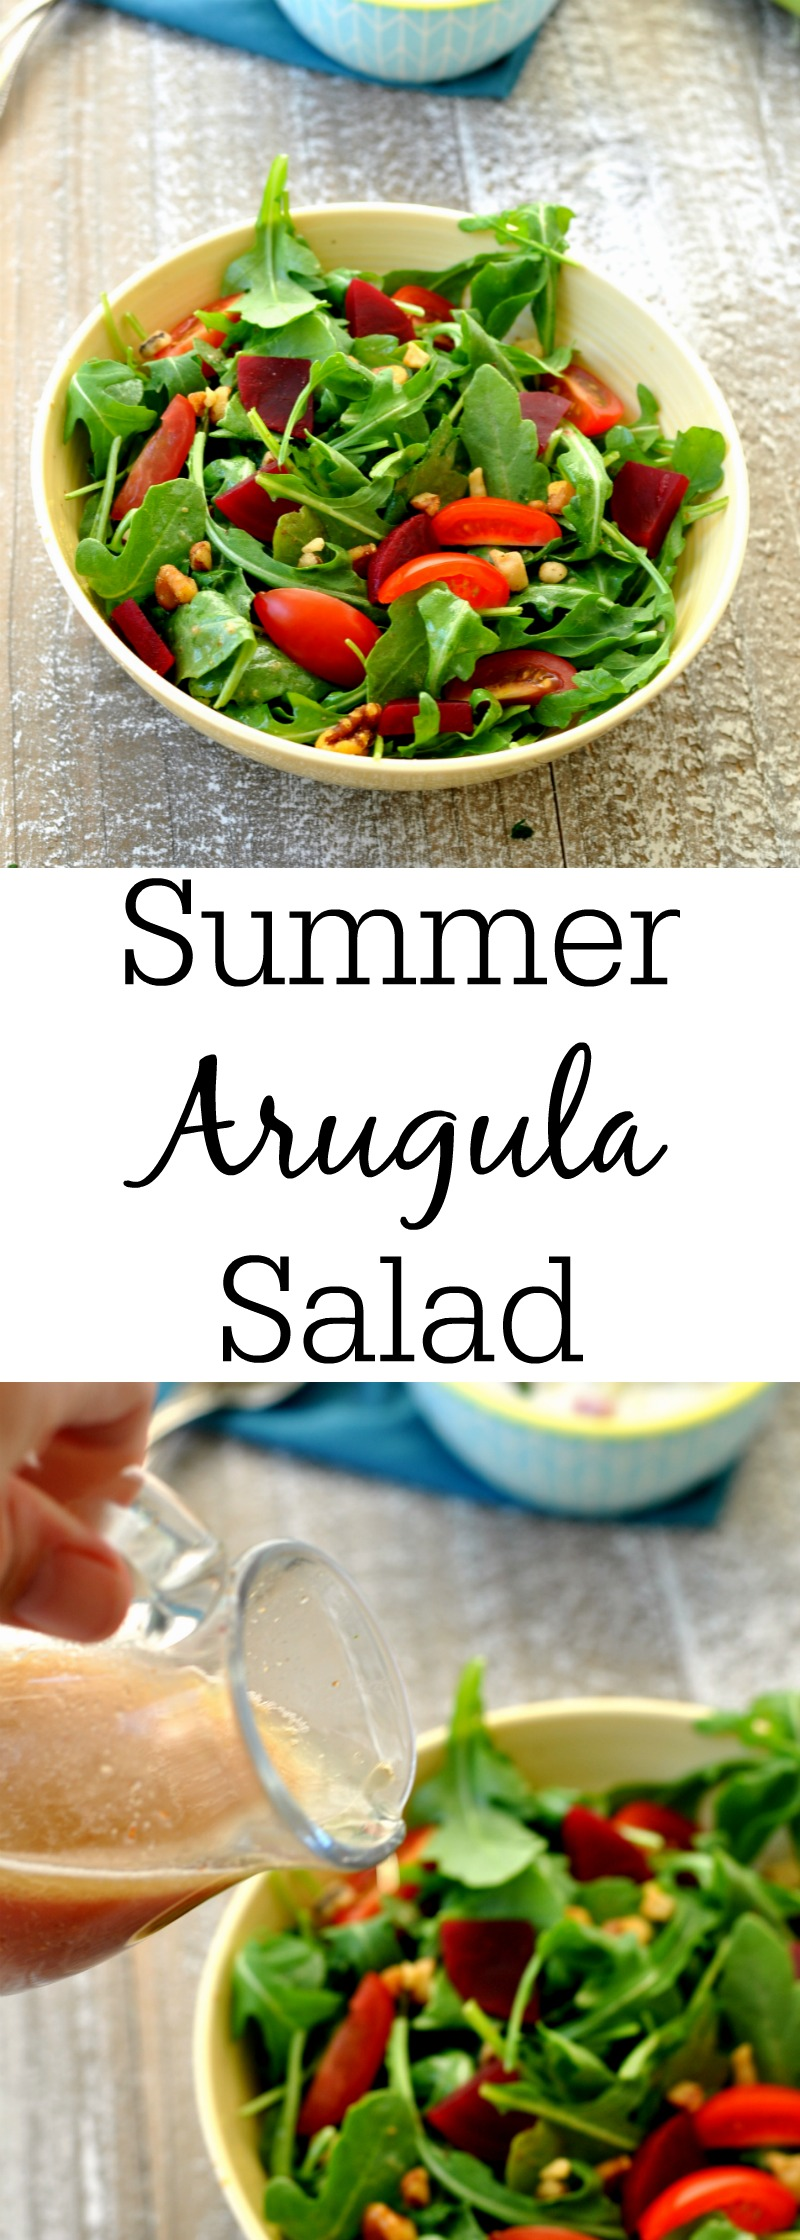 Summer Arugula Salad